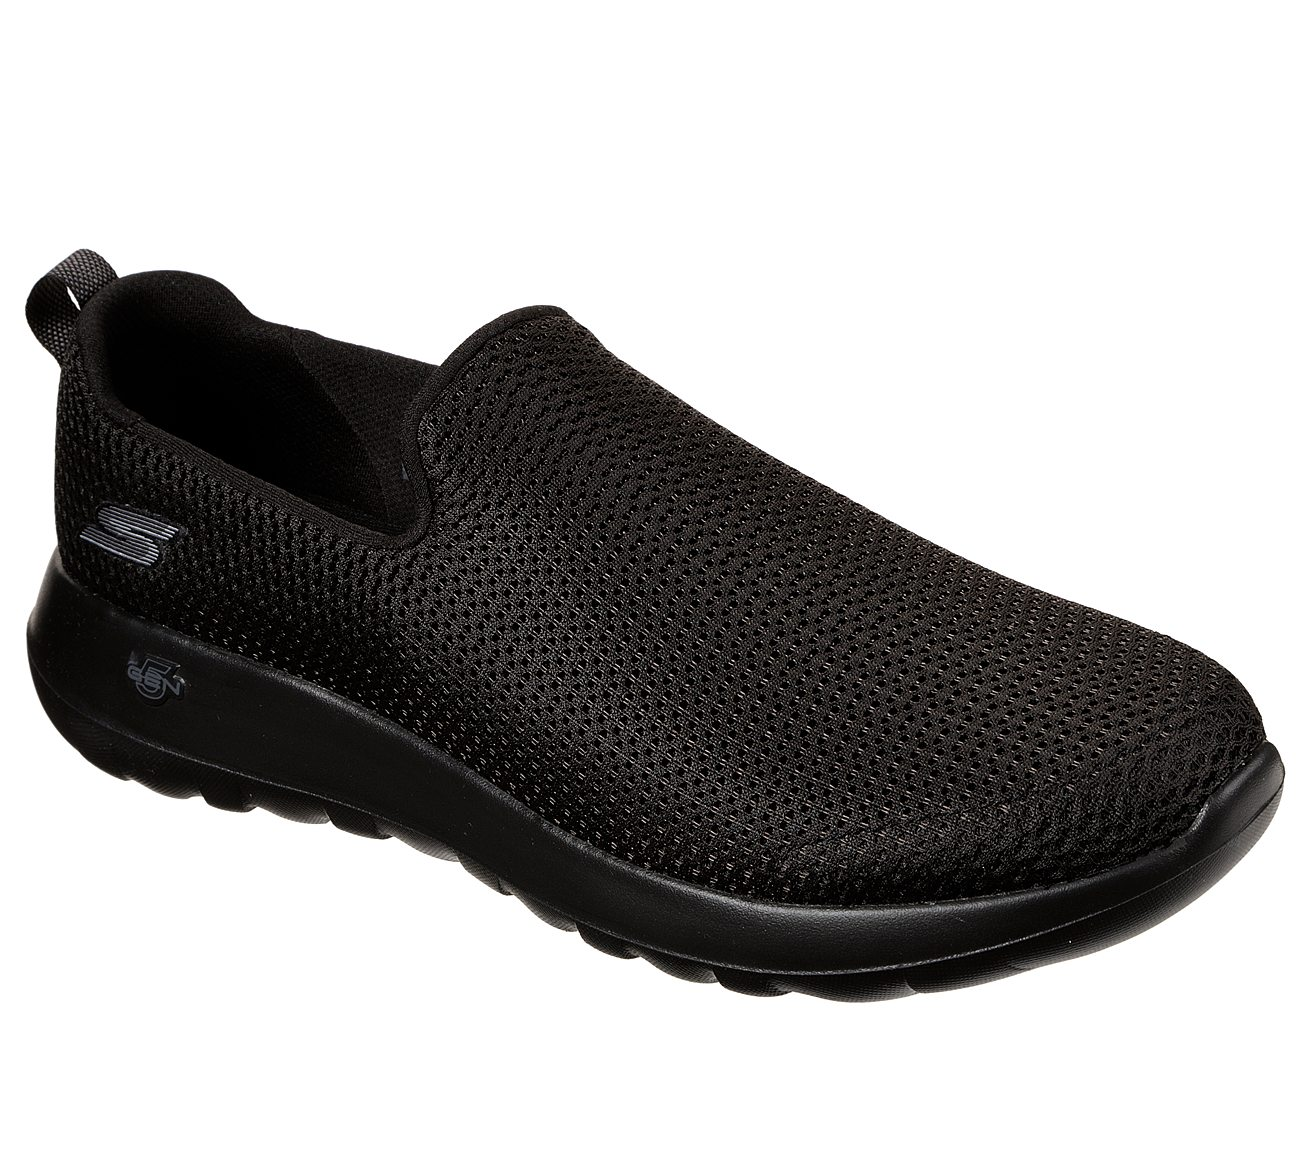 Buy SKECHERS GOwalk Max Skechers